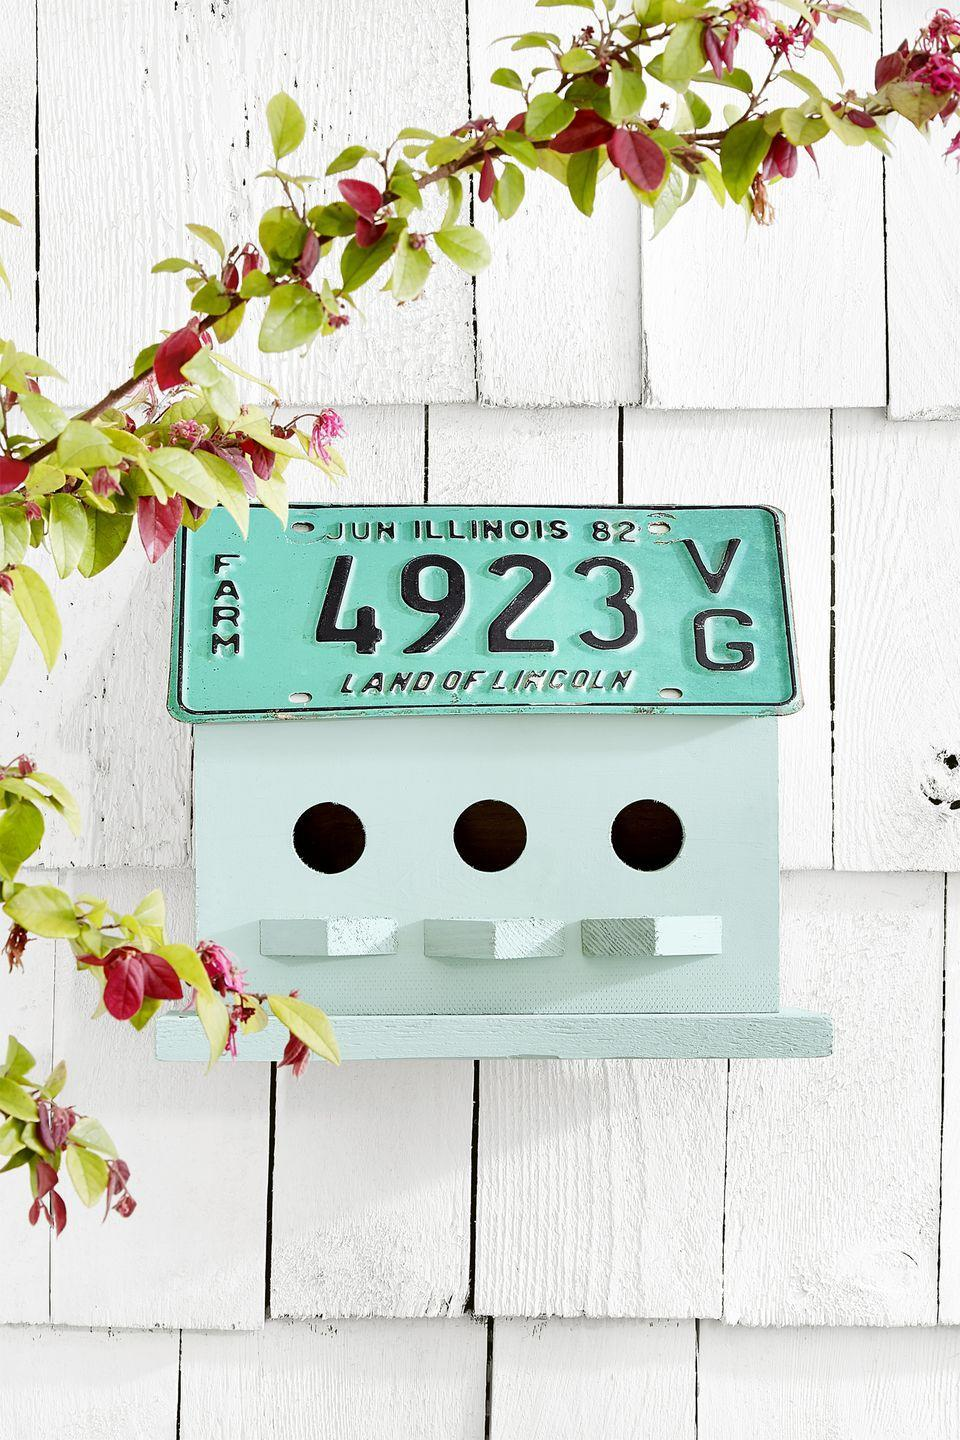 """<p>Old license plates also make a one-of-a-kind roof for your favorite birdhouse. Simply use hot glue or a screw to attach them to the <a href=""""https://go.redirectingat.com?id=74968X1596630&url=https%3A%2F%2Fwww.etsy.com%2Fshop%2FKeepAFeatheredNest&sref=https%3A%2F%2Fwww.countryliving.com%2Fdiy-crafts%2Ftips%2Fg645%2Fcrafty-christmas-presents-ideas%2F"""" rel=""""nofollow noopener"""" target=""""_blank"""" data-ylk=""""slk:little home"""" class=""""link rapid-noclick-resp"""">little home</a>.</p><p><strong><a class=""""link rapid-noclick-resp"""" href=""""https://go.redirectingat.com?id=74968X1596630&url=https%3A%2F%2Fwww.etsy.com%2Fshop%2FKeepAFeatheredNest&sref=https%3A%2F%2Fwww.countryliving.com%2Fdiy-crafts%2Ftips%2Fg645%2Fcrafty-christmas-presents-ideas%2F"""" rel=""""nofollow noopener"""" target=""""_blank"""" data-ylk=""""slk:SHOP BIRDHOUSES"""">SHOP BIRDHOUSES</a></strong></p>"""